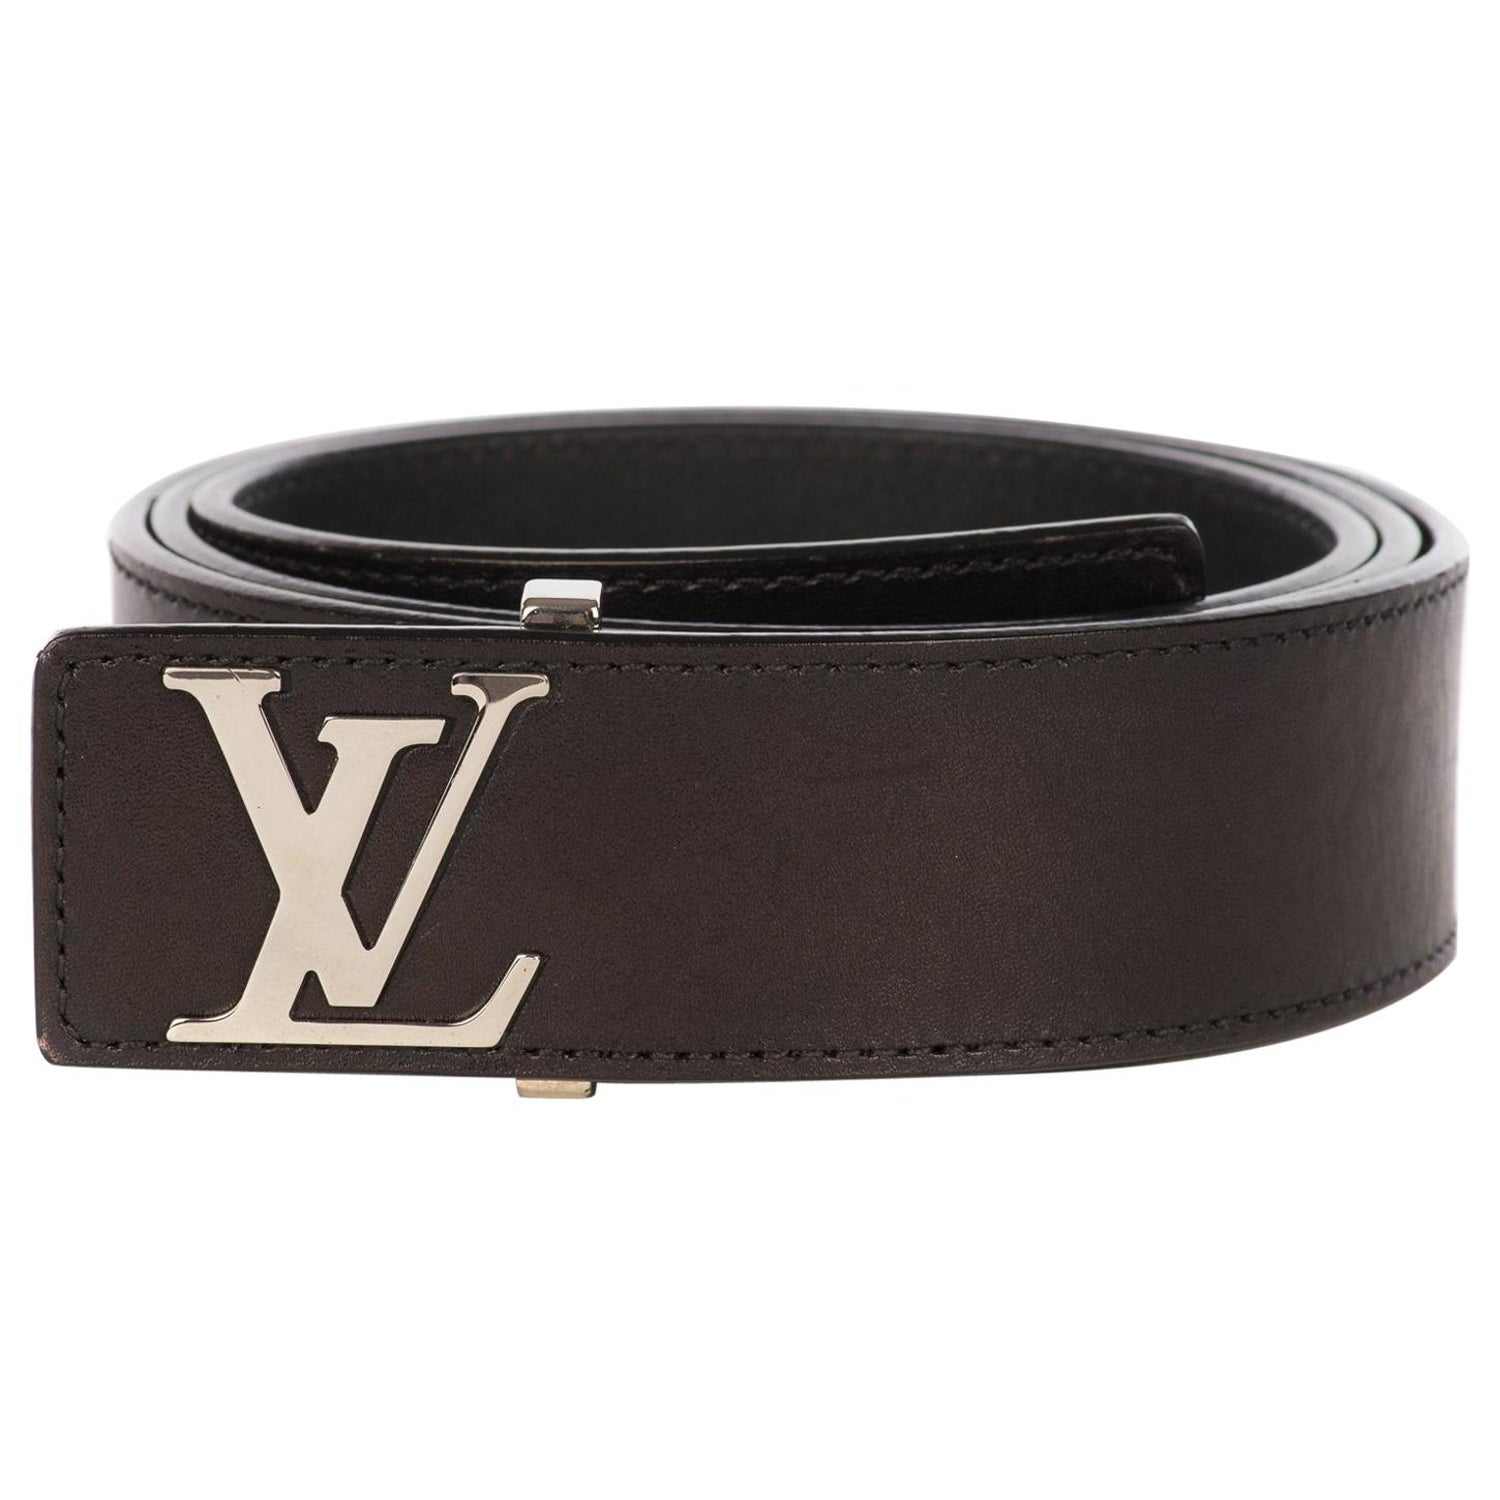 340f3e3db Louis Vuitton belt for men in black leather in excellent condition ! at  1stdibs